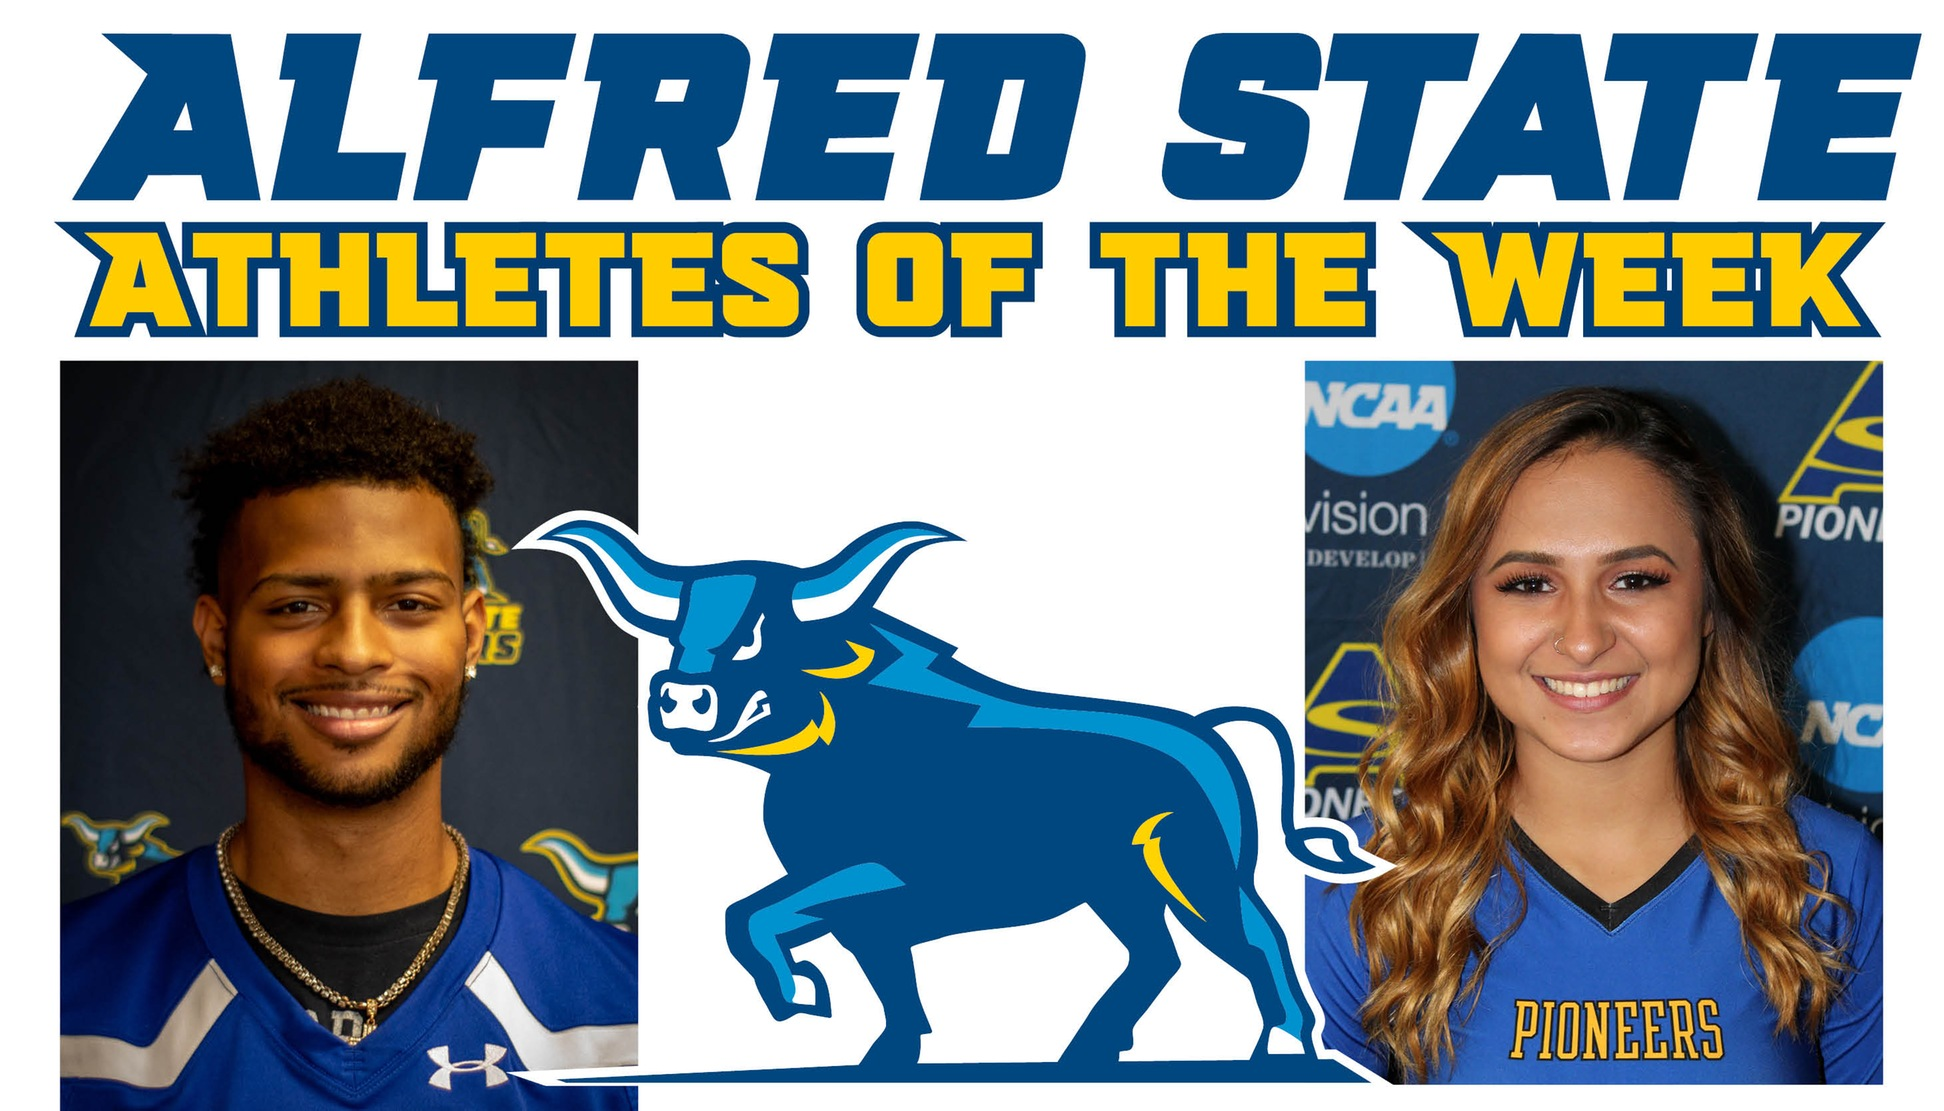 Jalen Long and Madison Webster named Athletes of the Week - 9/4